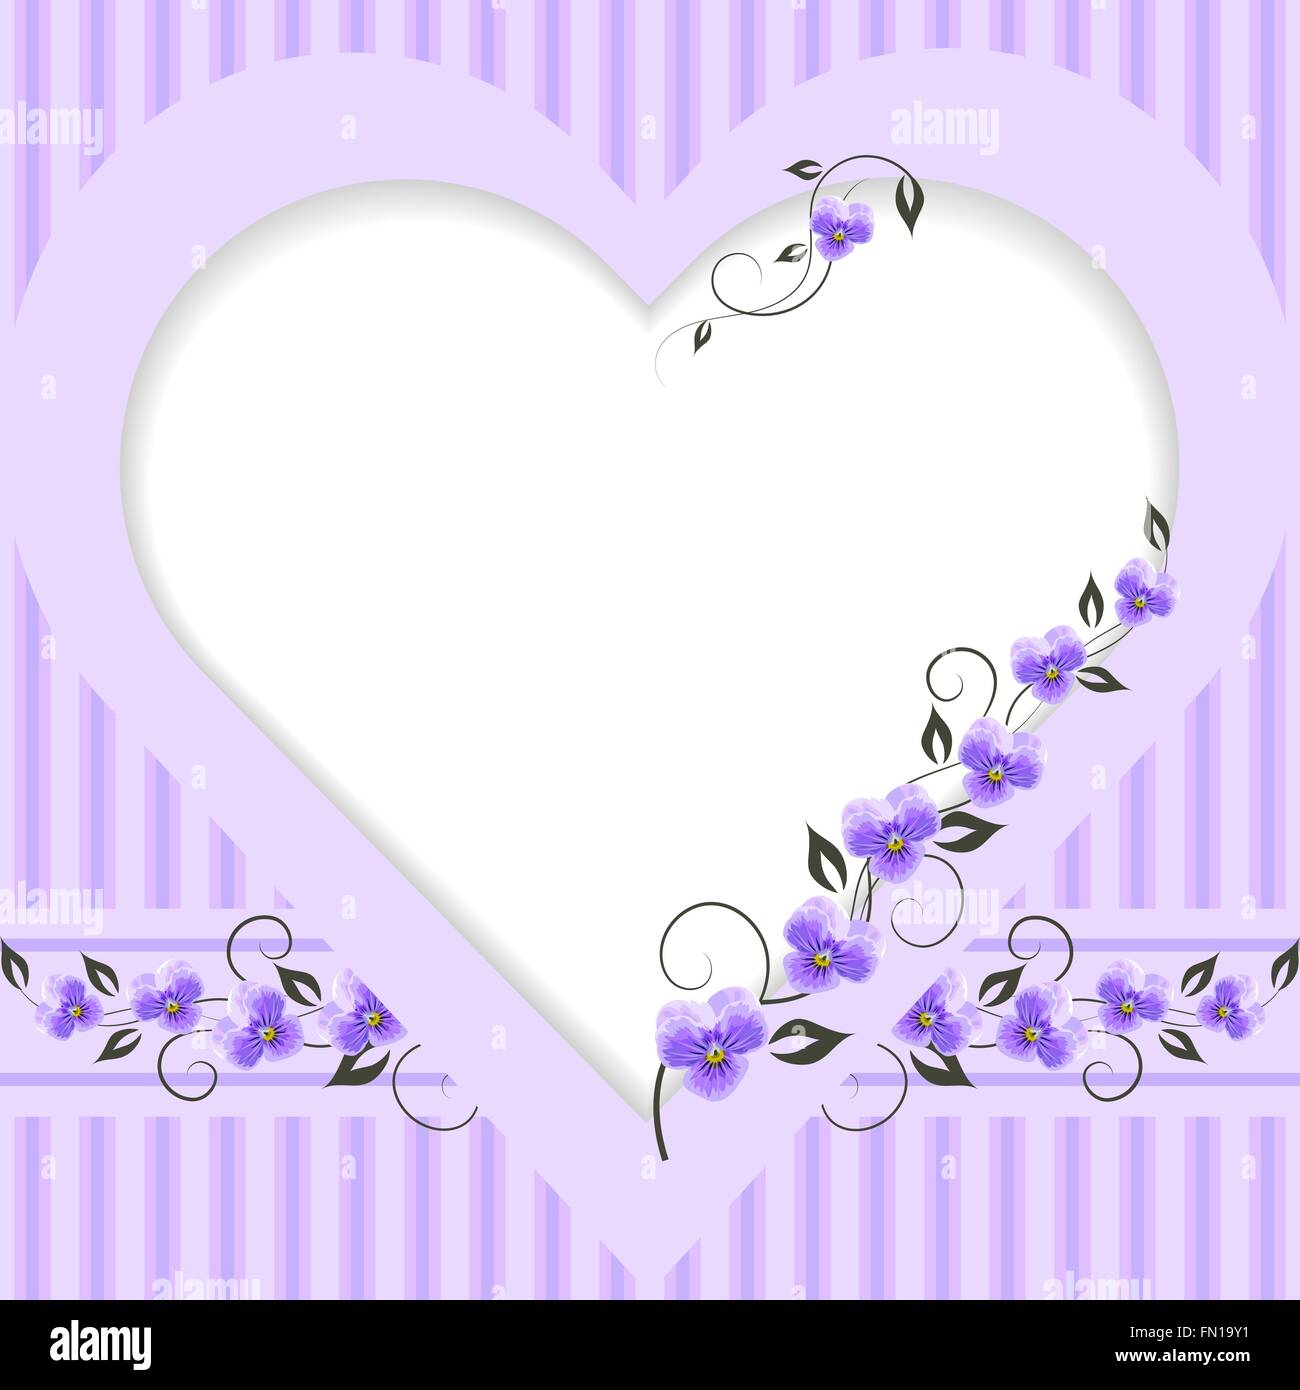 Vintage frame in shape of a heart - Stock Image